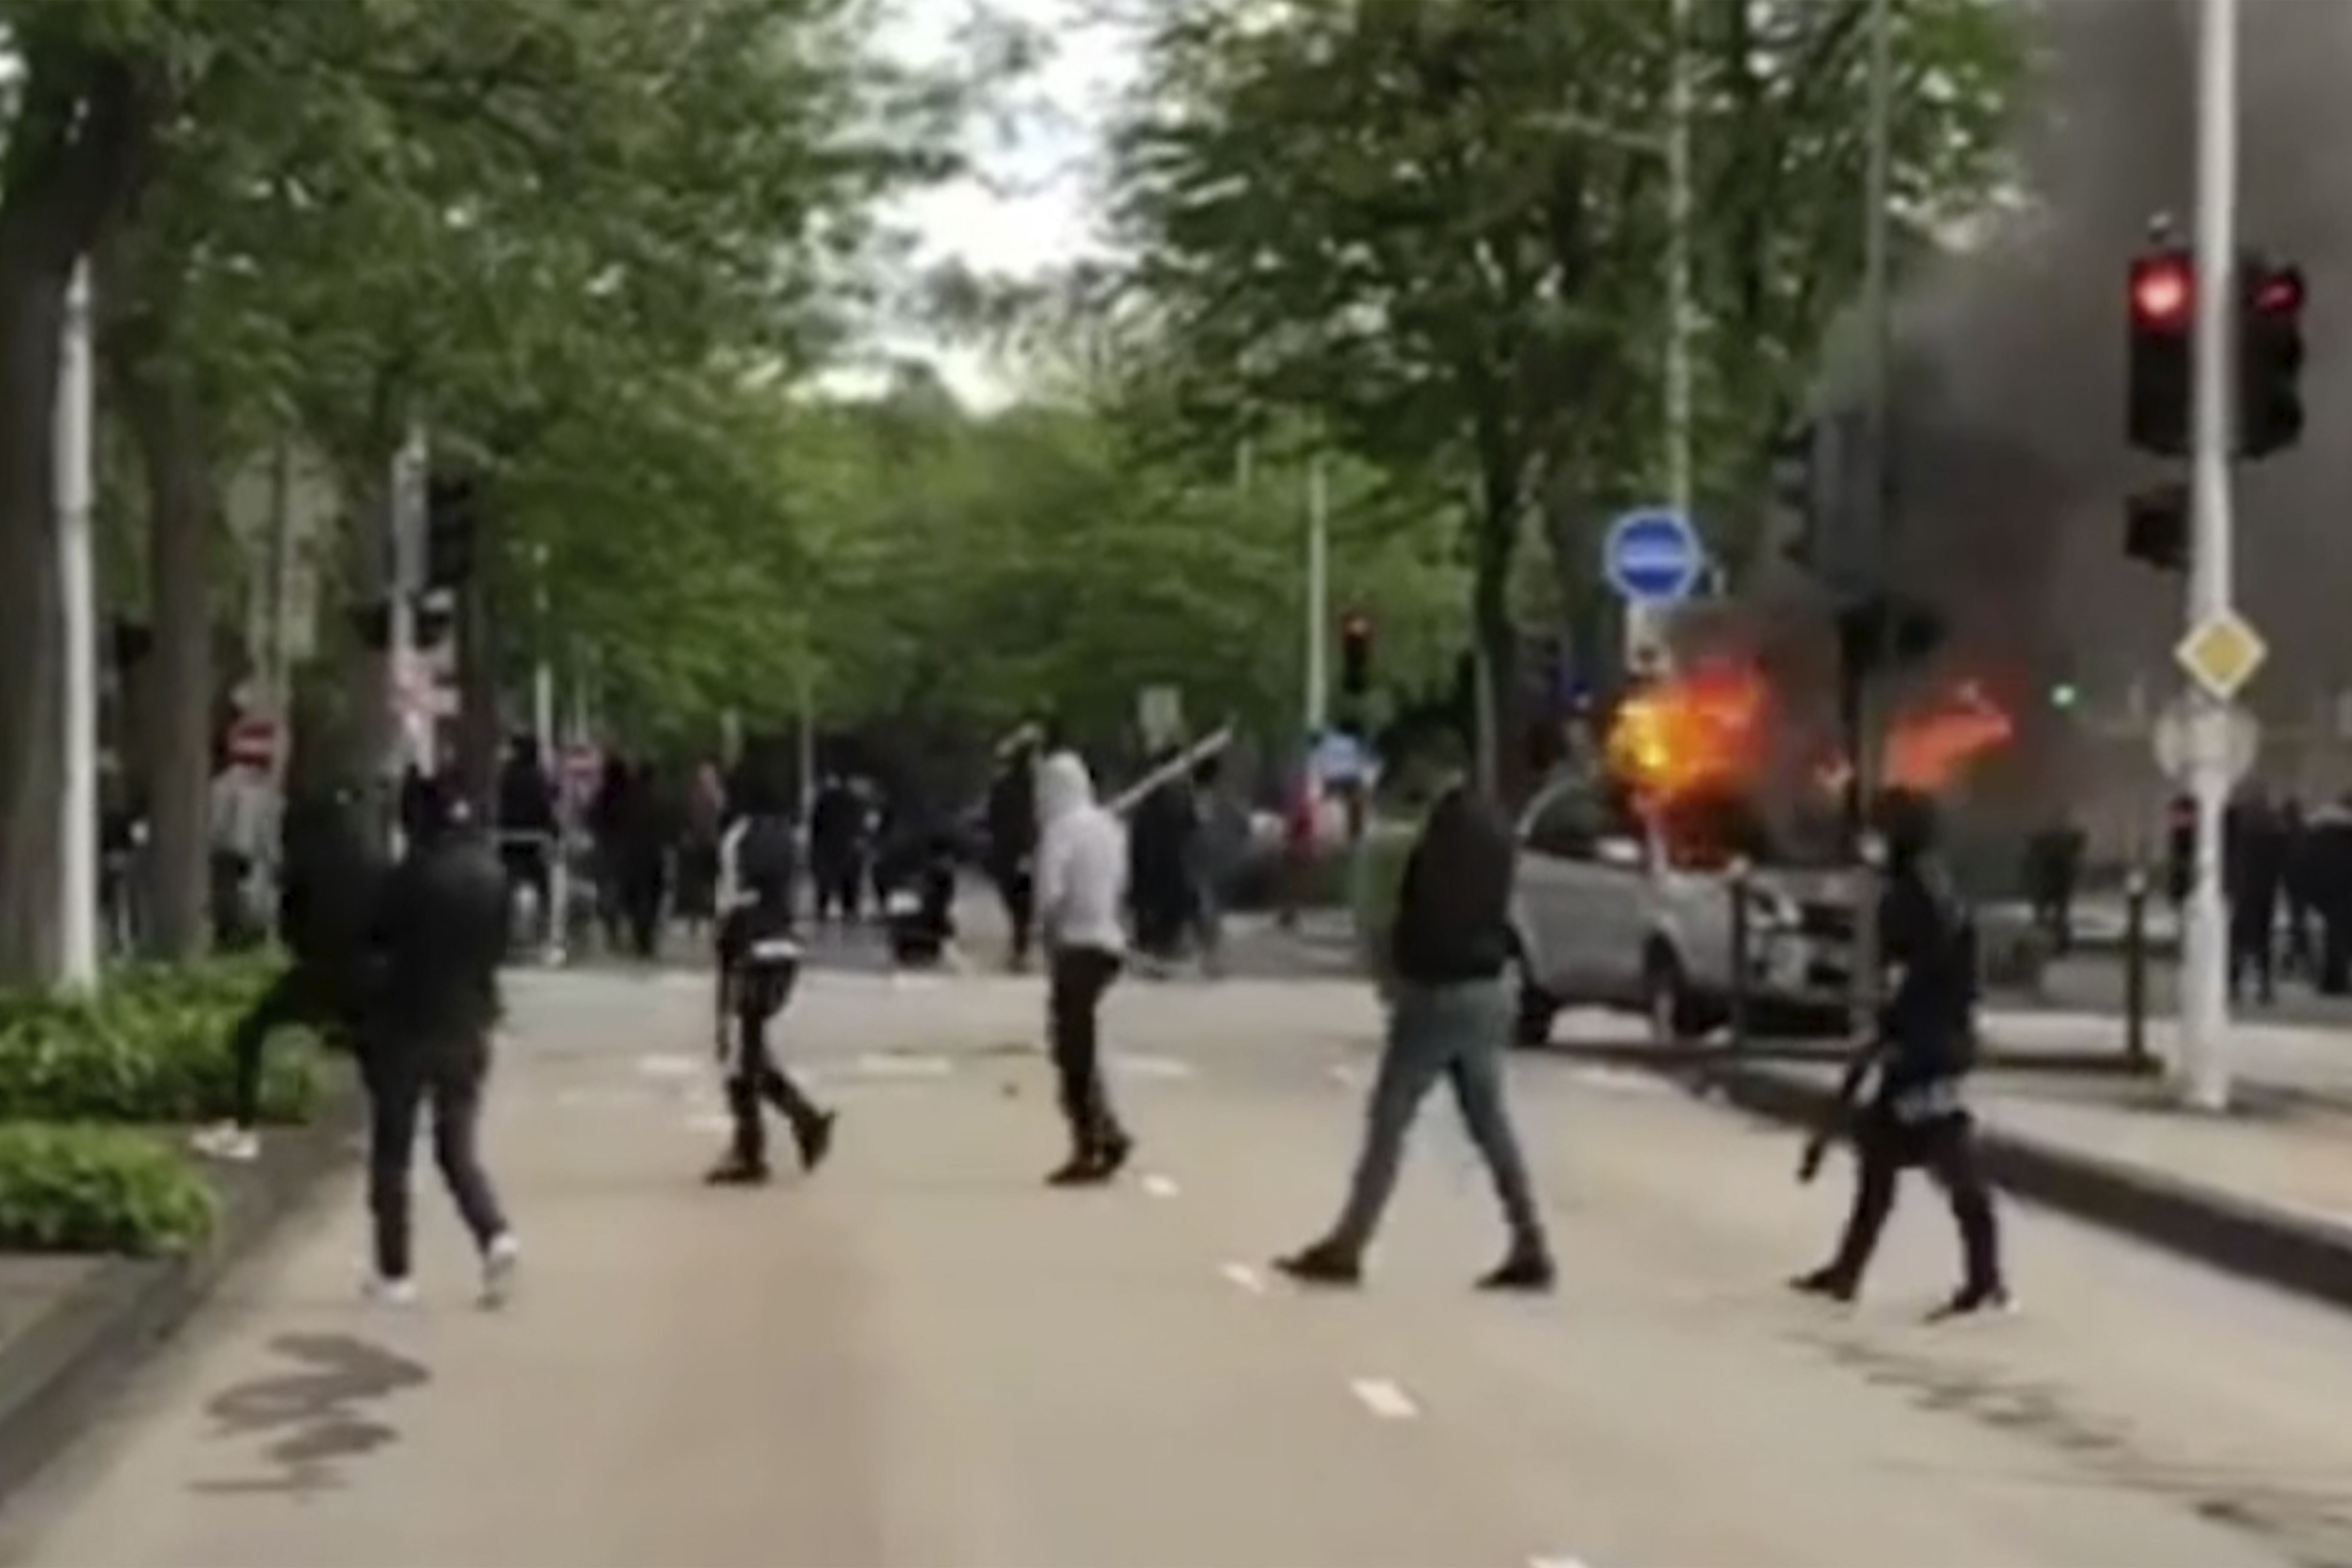 Youths on the streets in Dijon